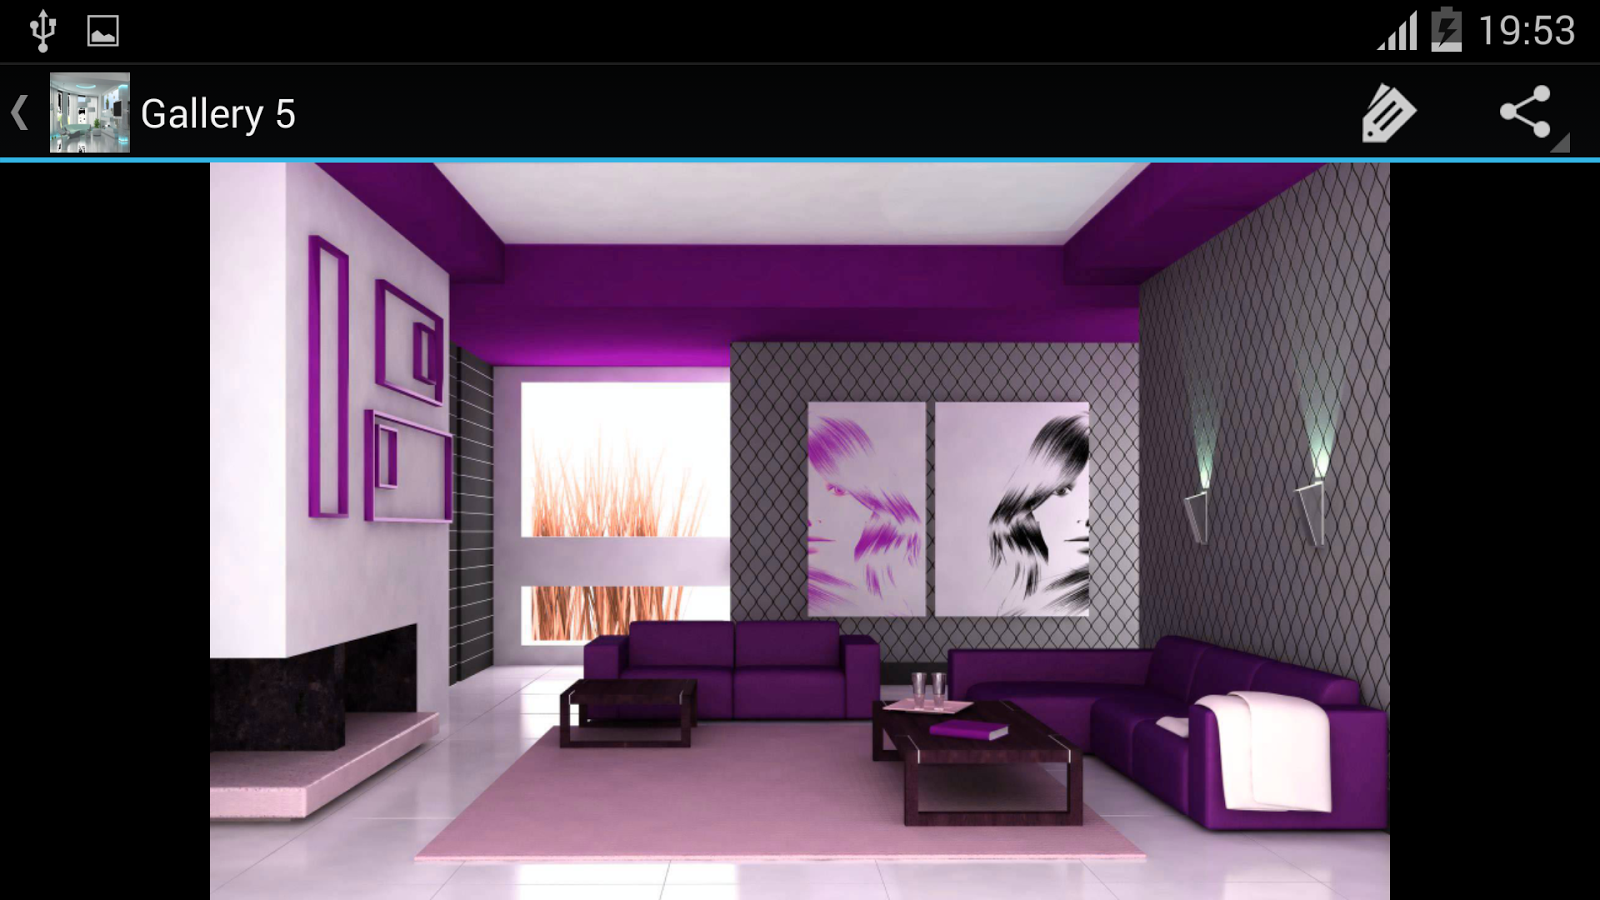 Beautiful mobile shop interior design ideas gallery for Interior designs videos